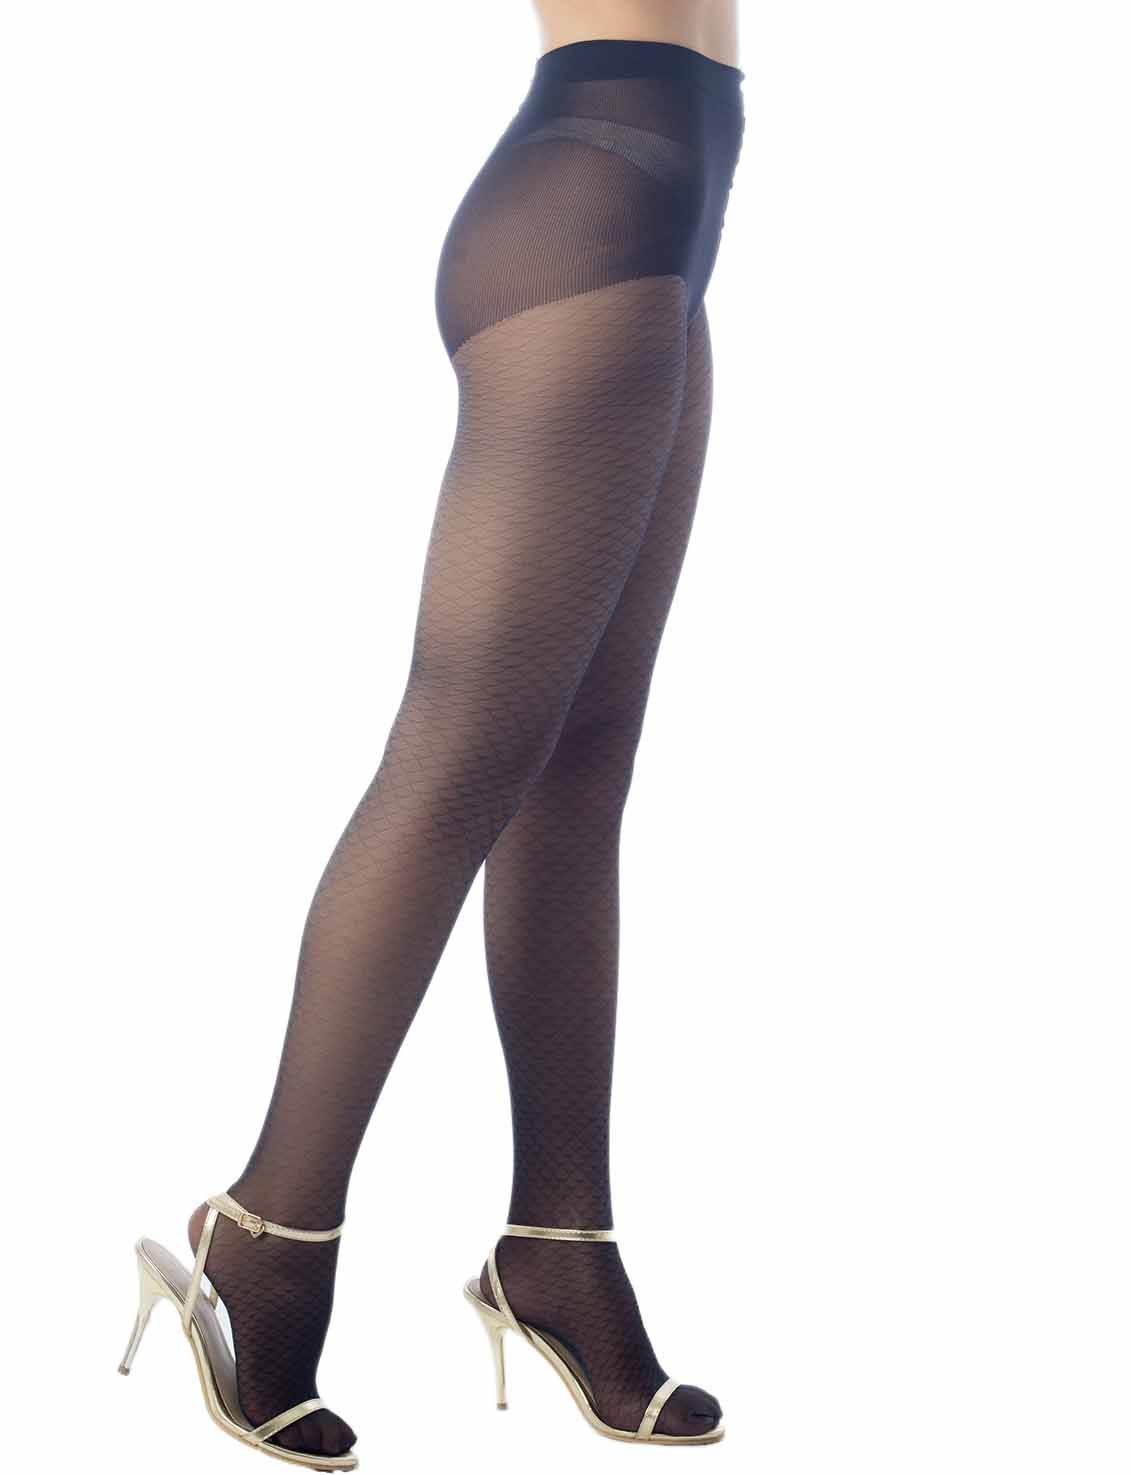 Women's Fish Scale Sheers Leg Darkened 5 DEN Ultra Sheer Tights Pantyhose, Size: One Size, Black